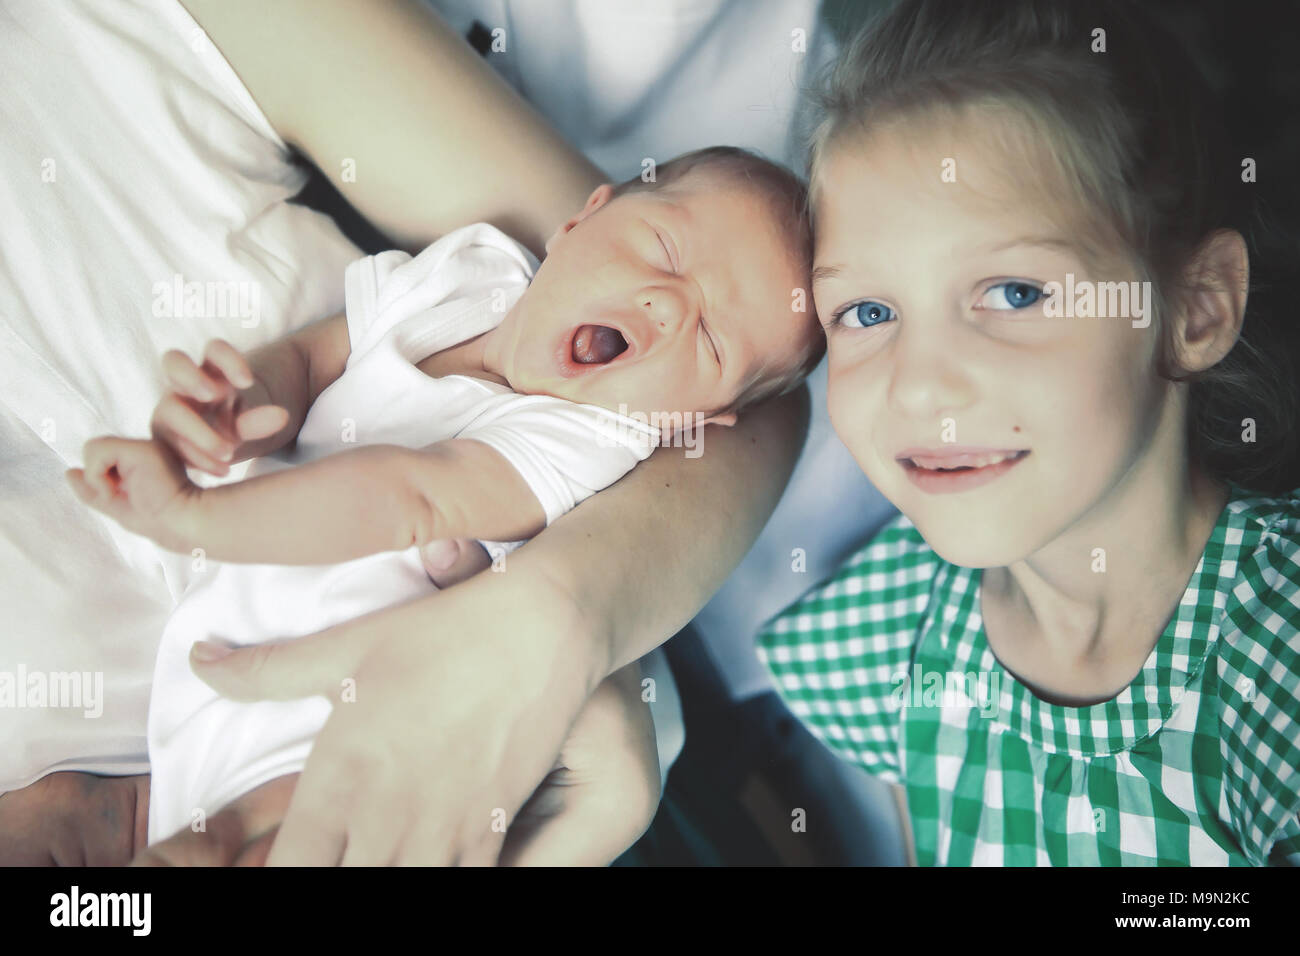 older sister next to a newborn baby - Stock Image